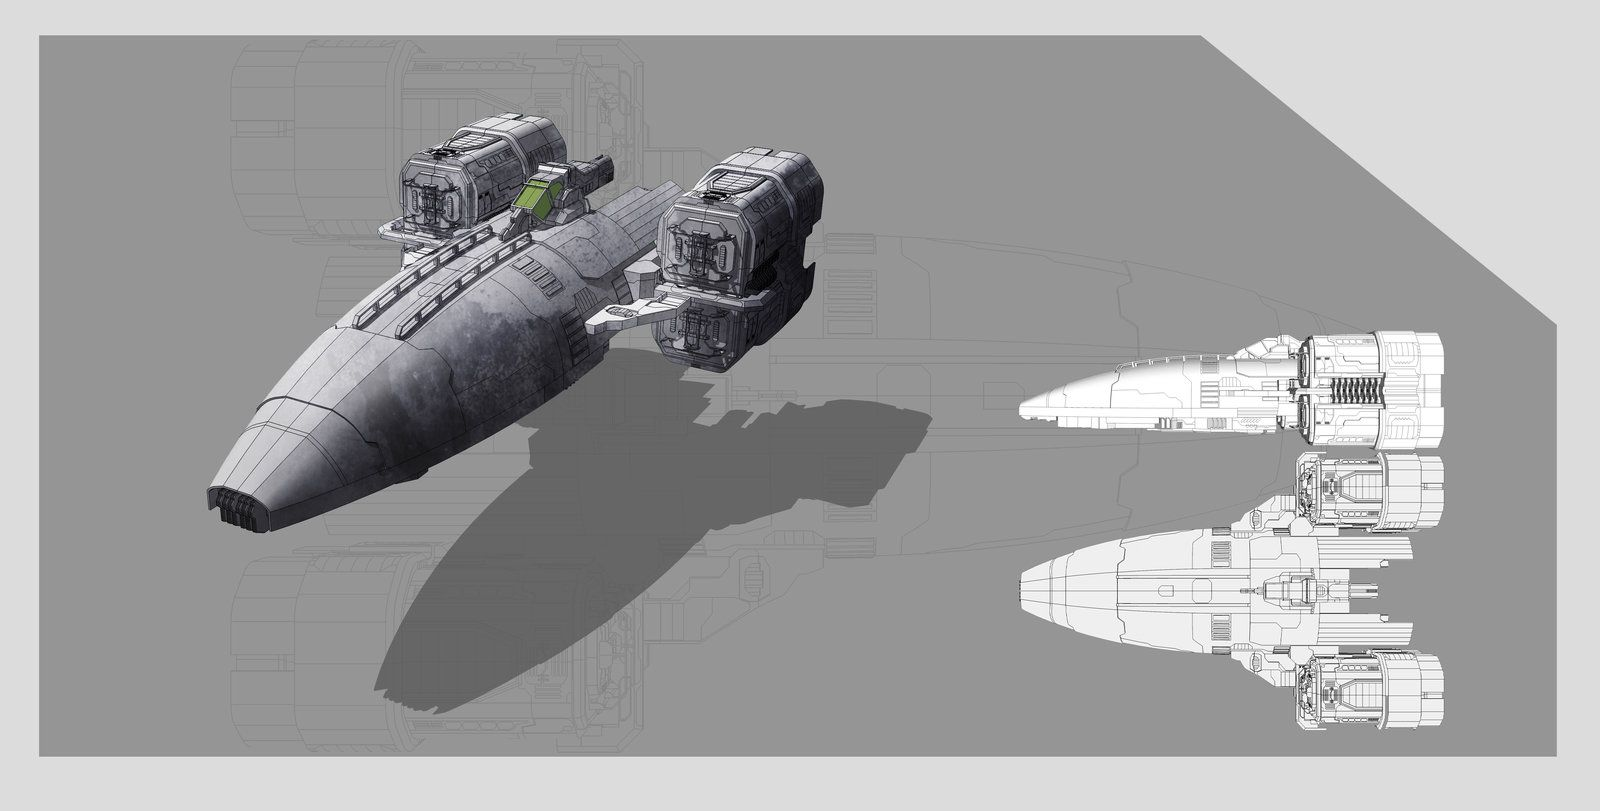 Spaceship concept by on deviantart ship of my dreams pinterest - Heating small spaces concept ...